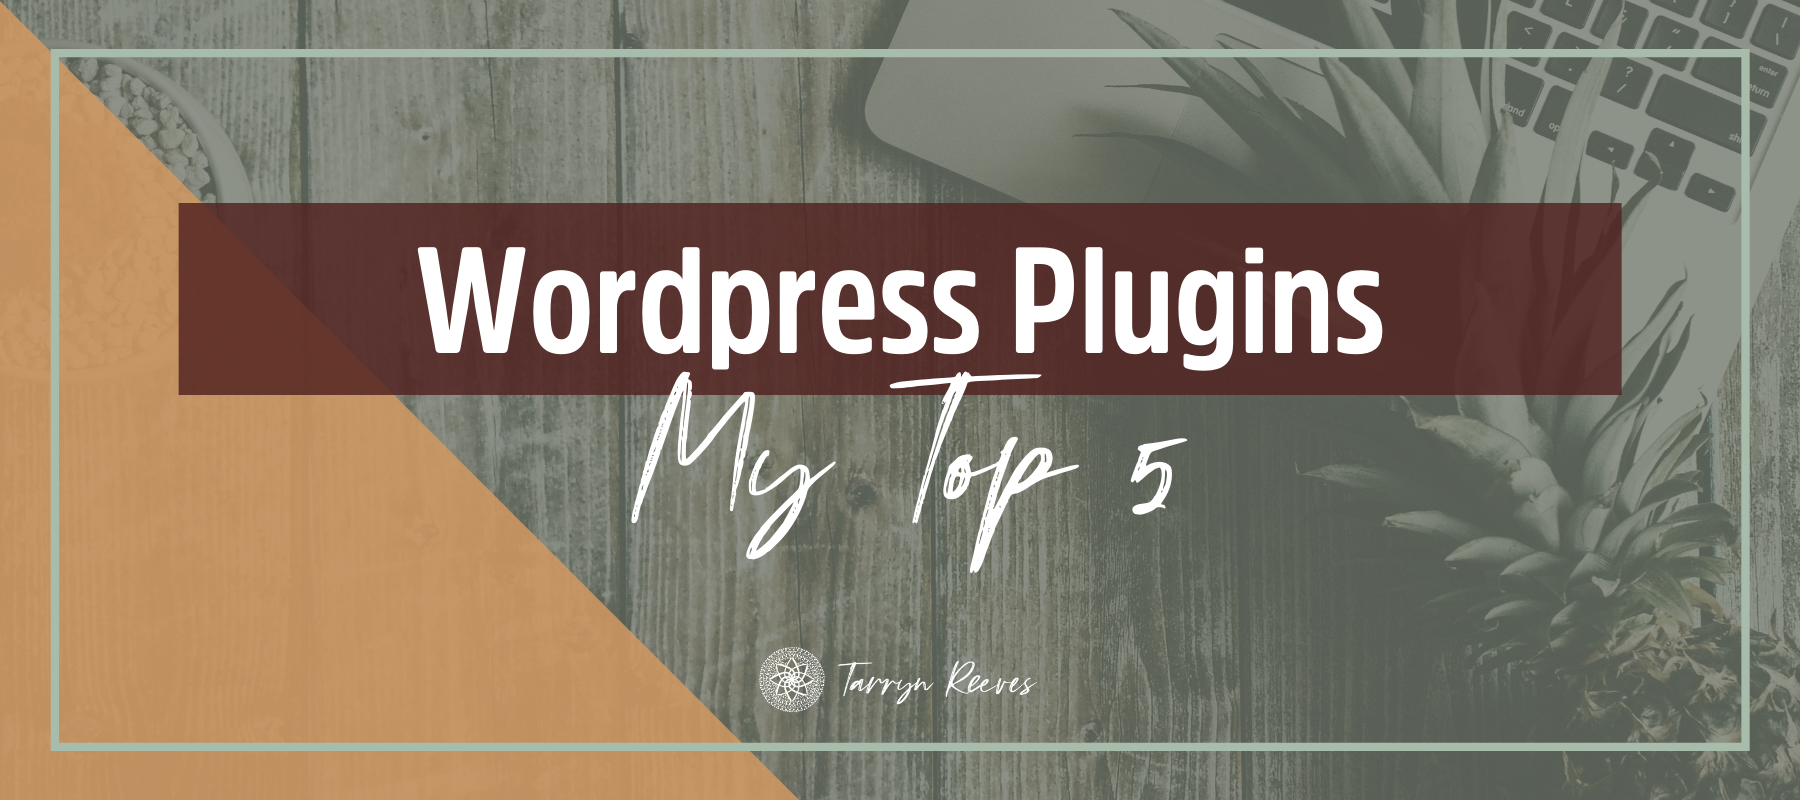 Wordpress Plugins: My Top 5